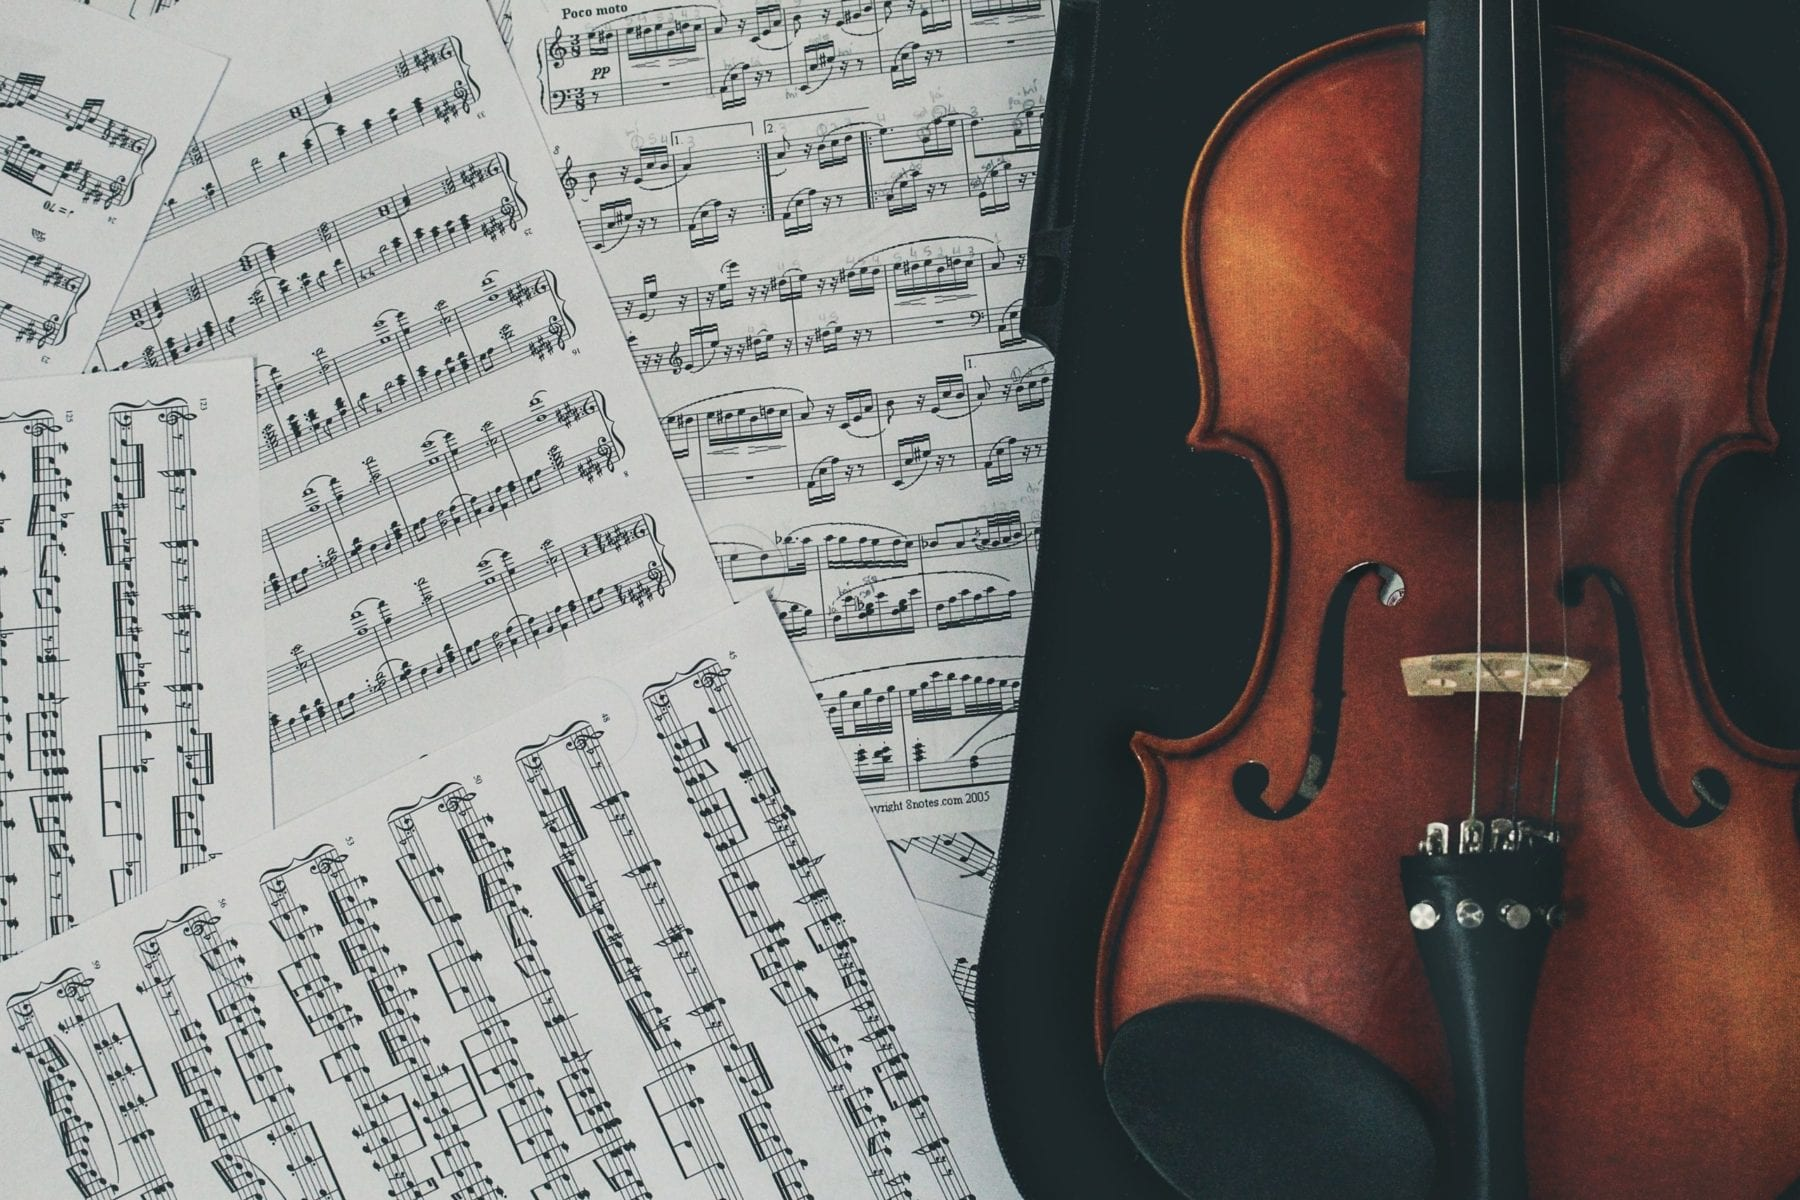 Classics for Kids offers classical music lessons